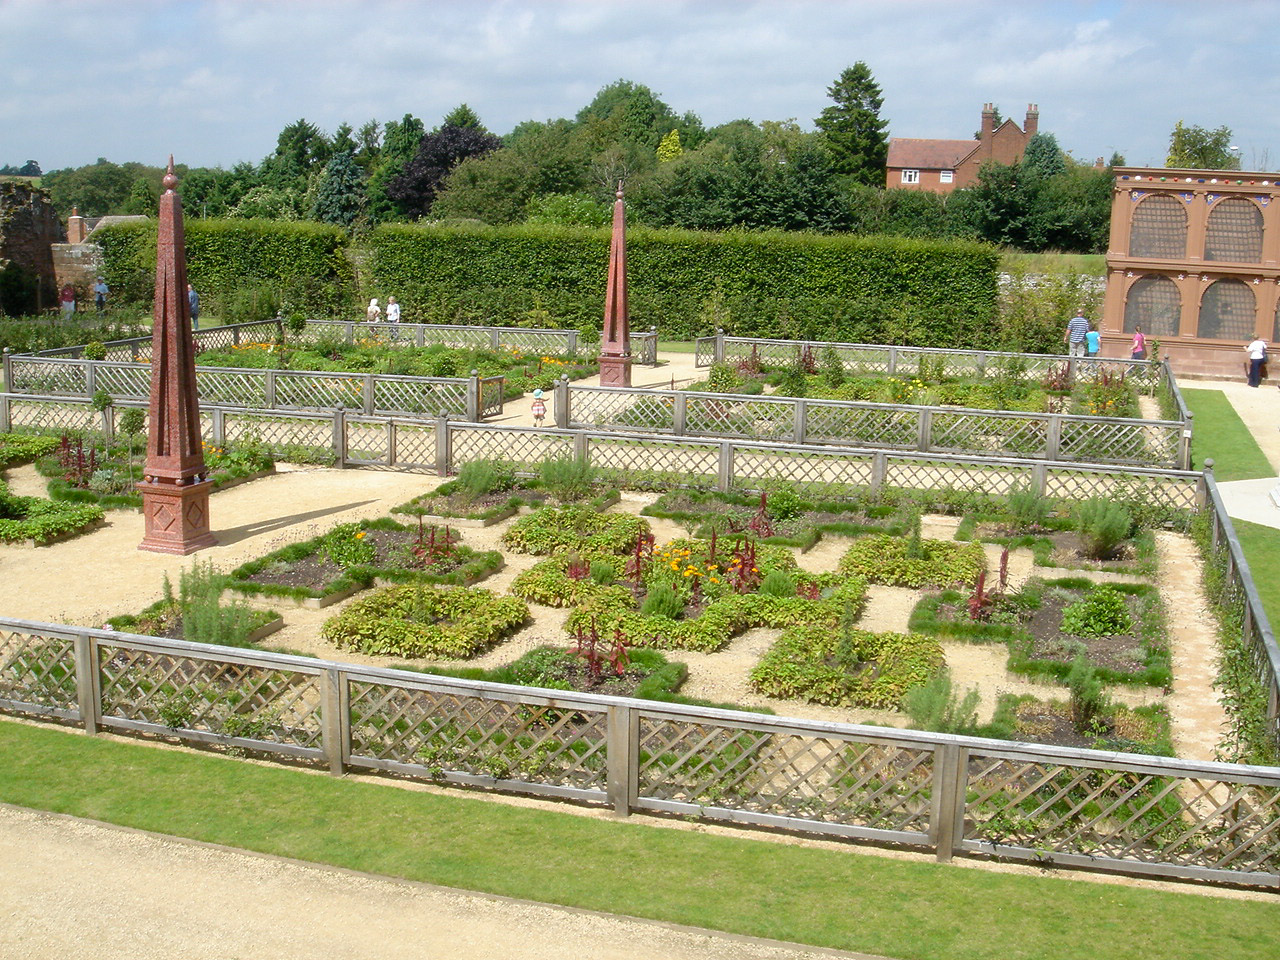 Garden history matters february 2012 the restored elizabethan garden at kenilworth castle solutioingenieria Image collections